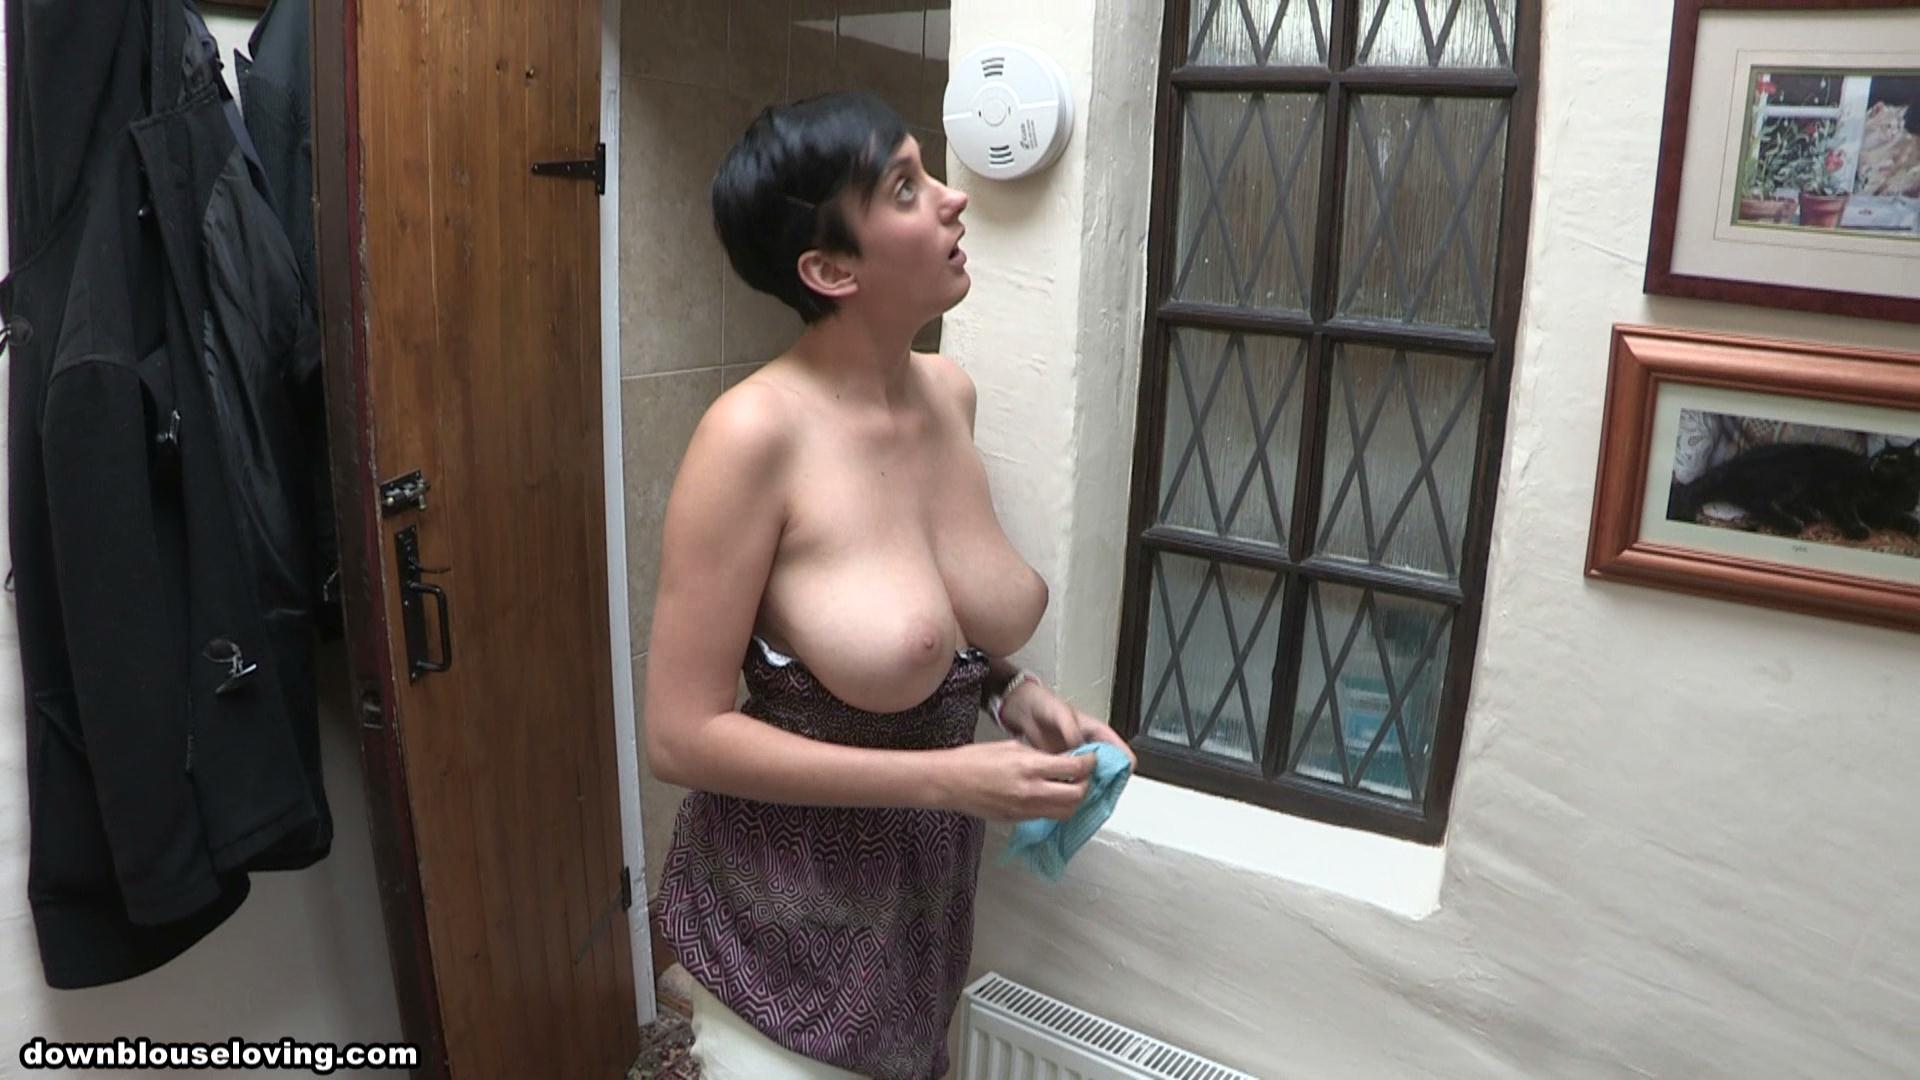 Busty neighbor almost caught me